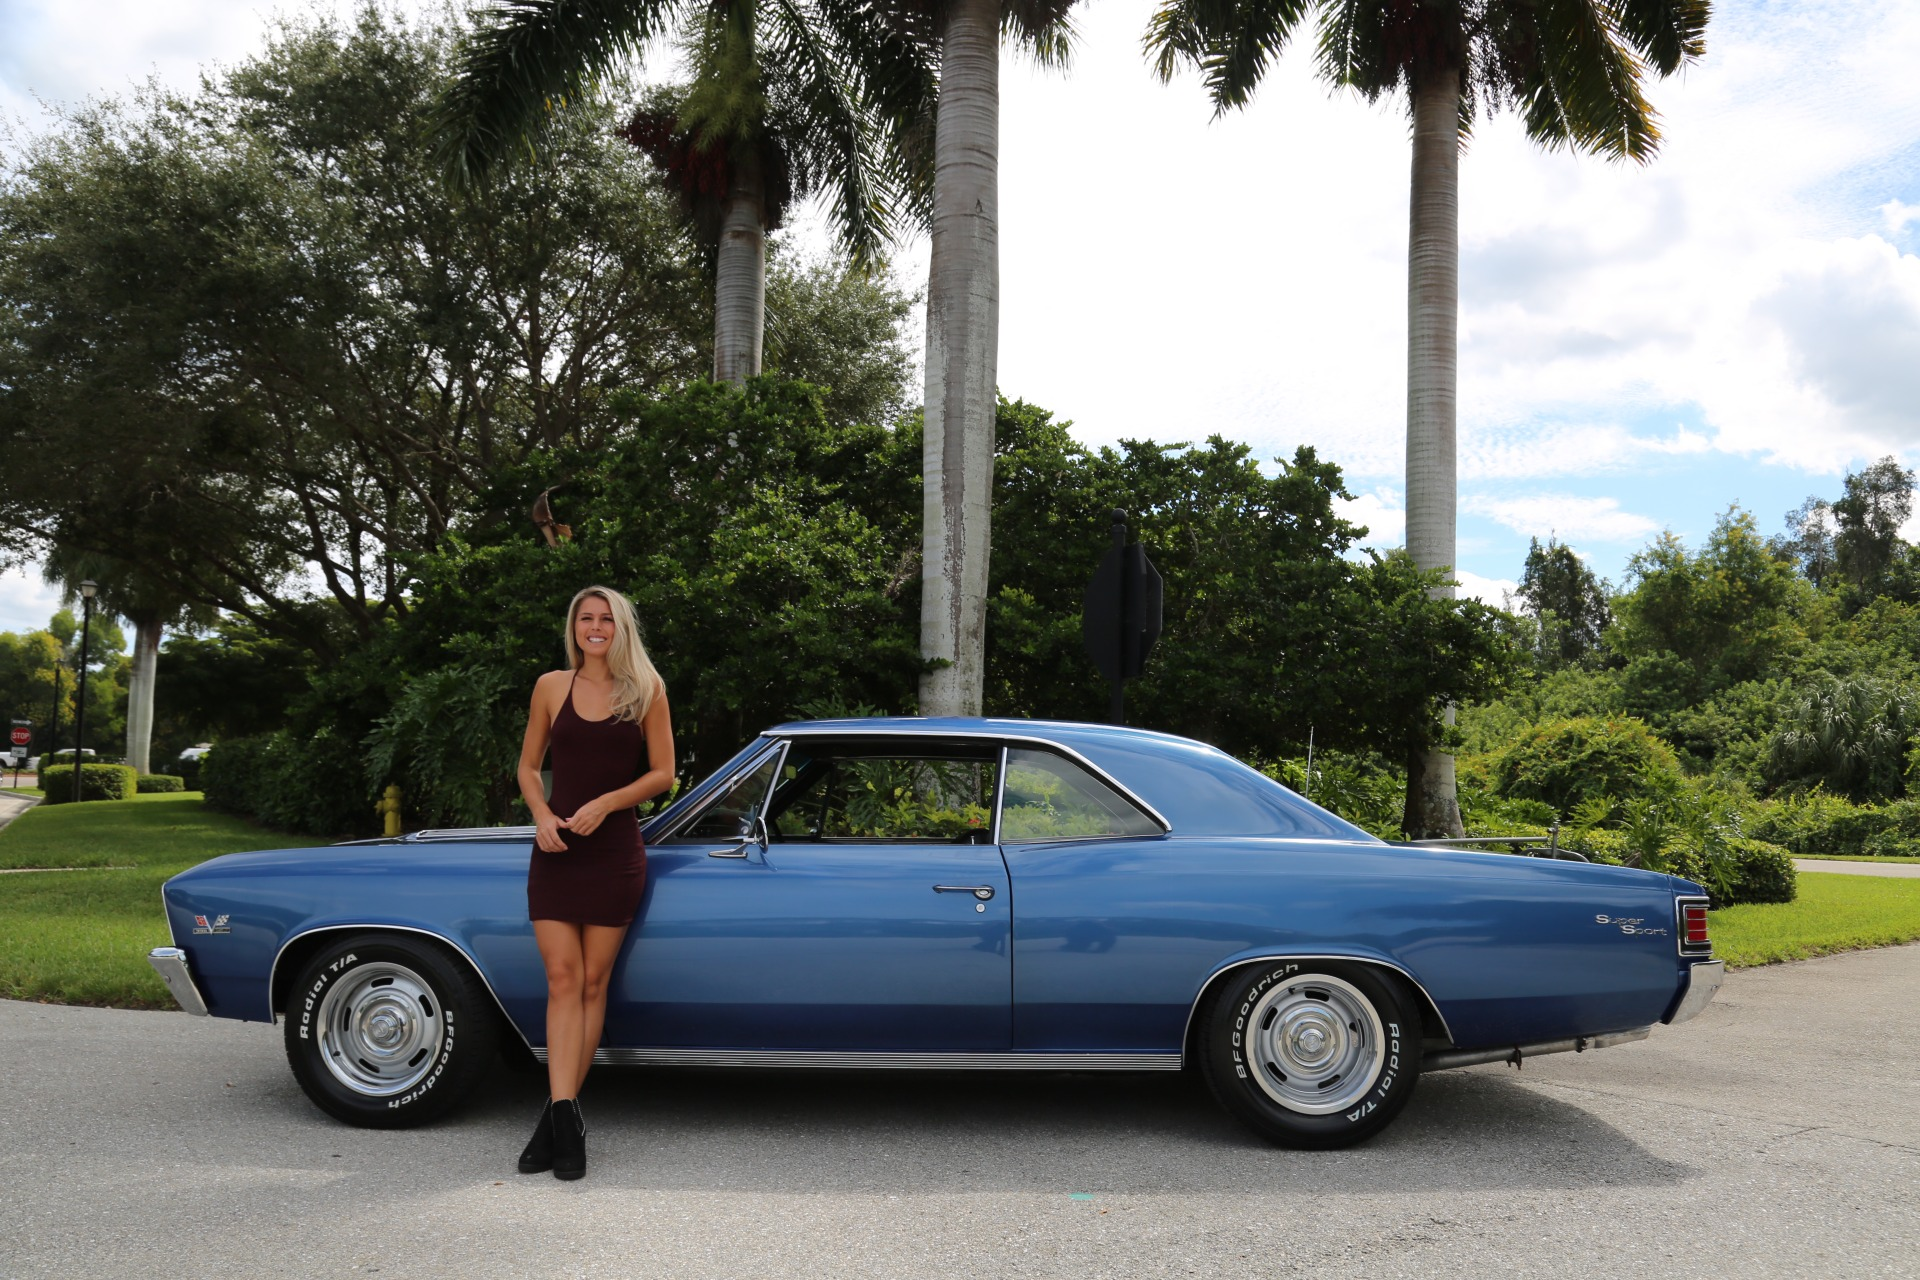 Used 1967 Chevrolet Chevelle SS Super Sport 396 for sale $47,000 at Muscle Cars for Sale Inc. in Fort Myers FL 33912 5